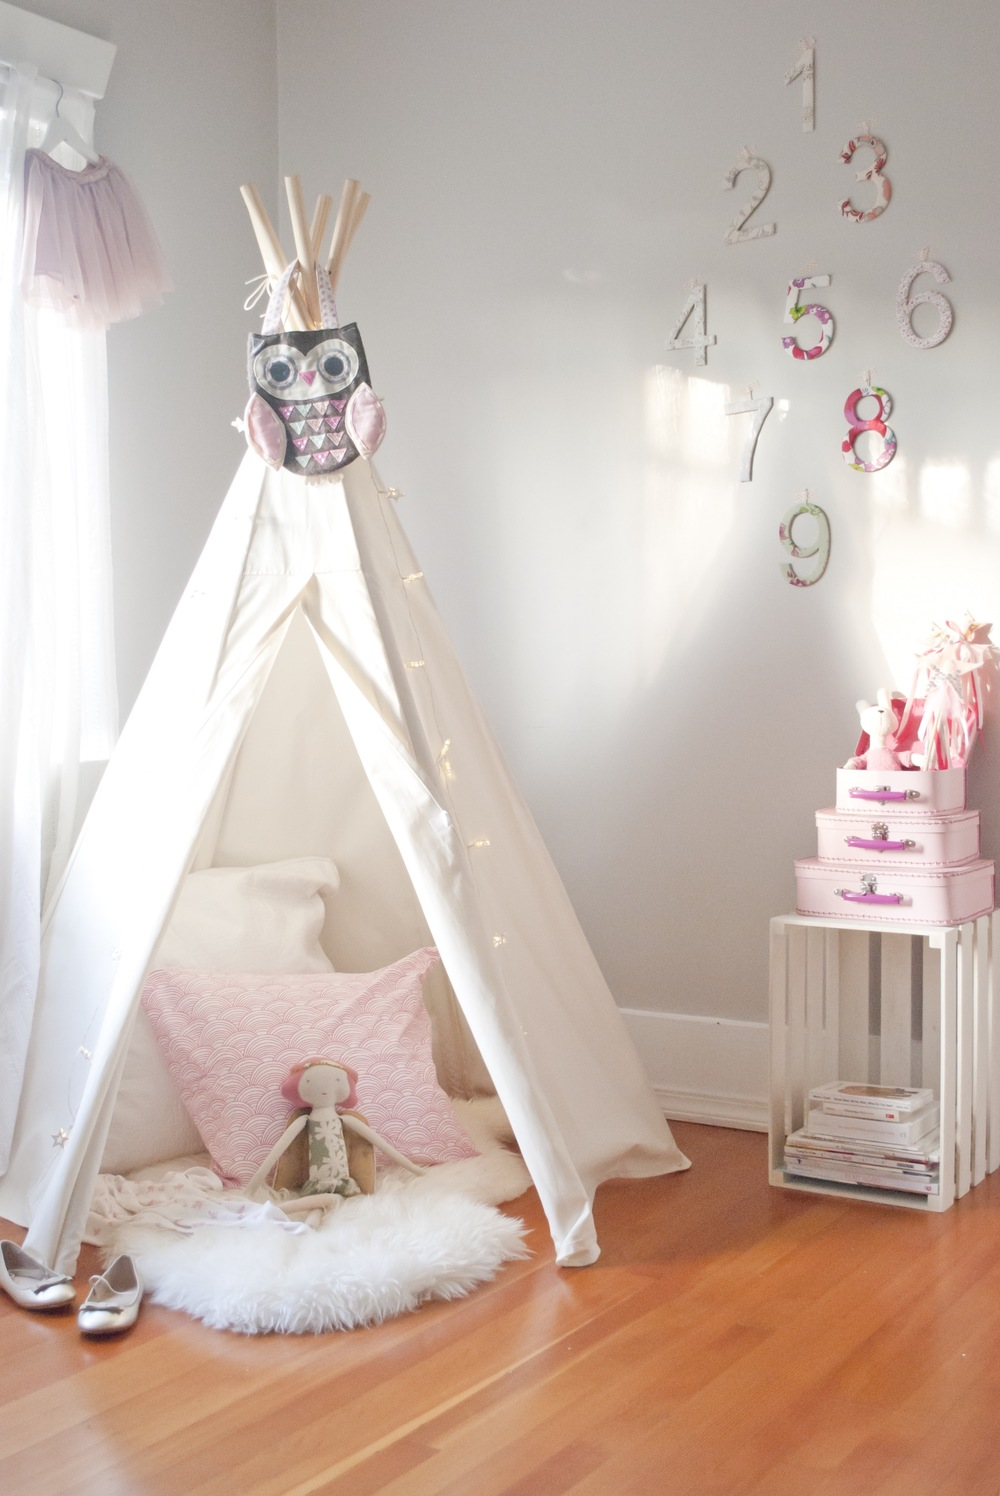 winter-daisy-interior-design-kids-playroom